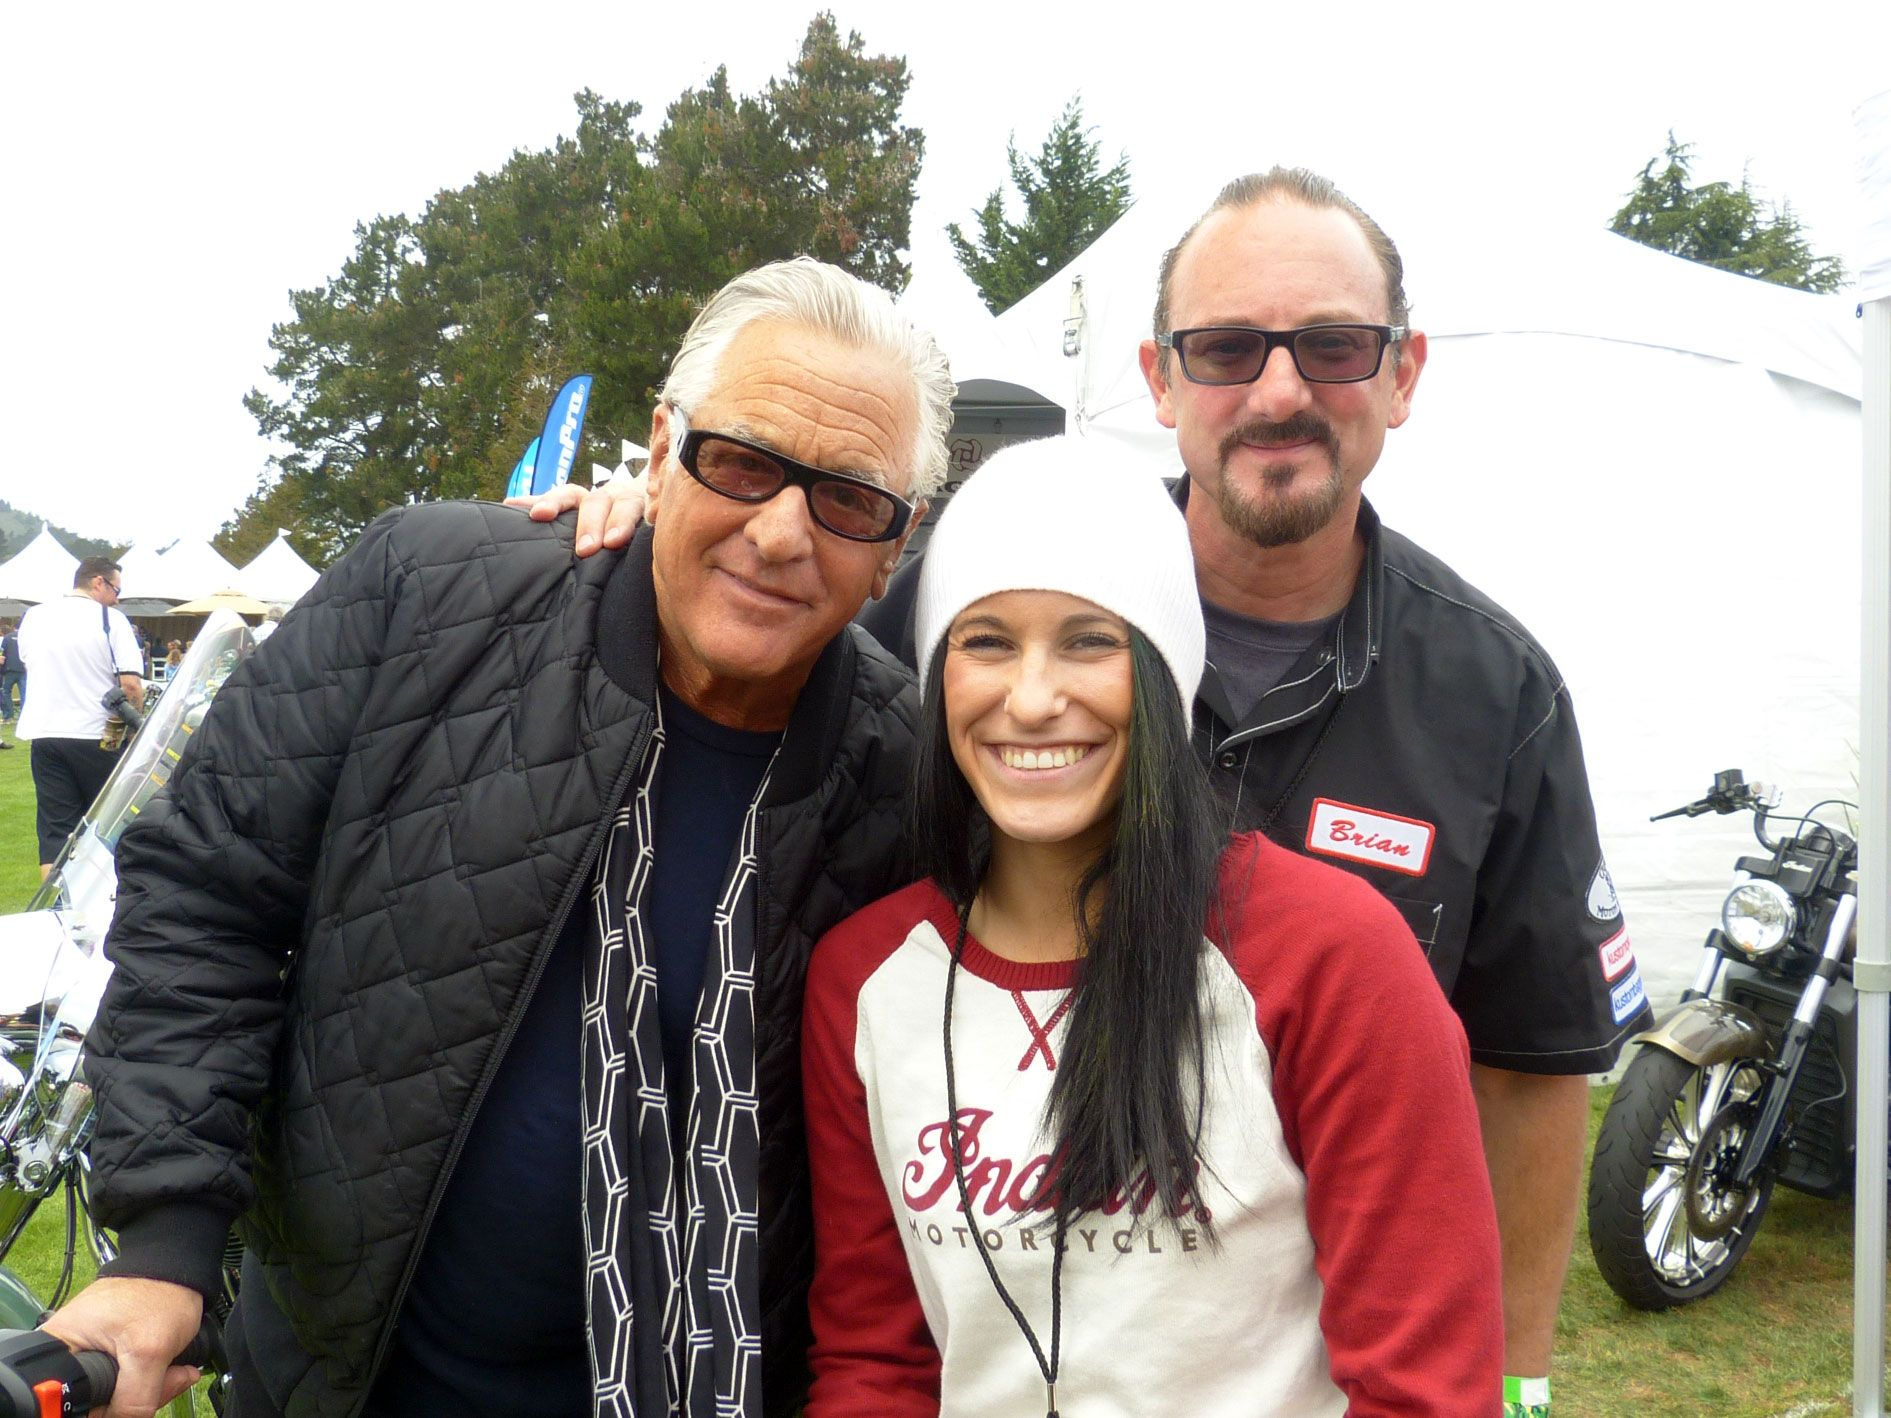 Storage Wars' Barry Weiss and MotoGeo's Jaime Robinson in Motorcycle Accident